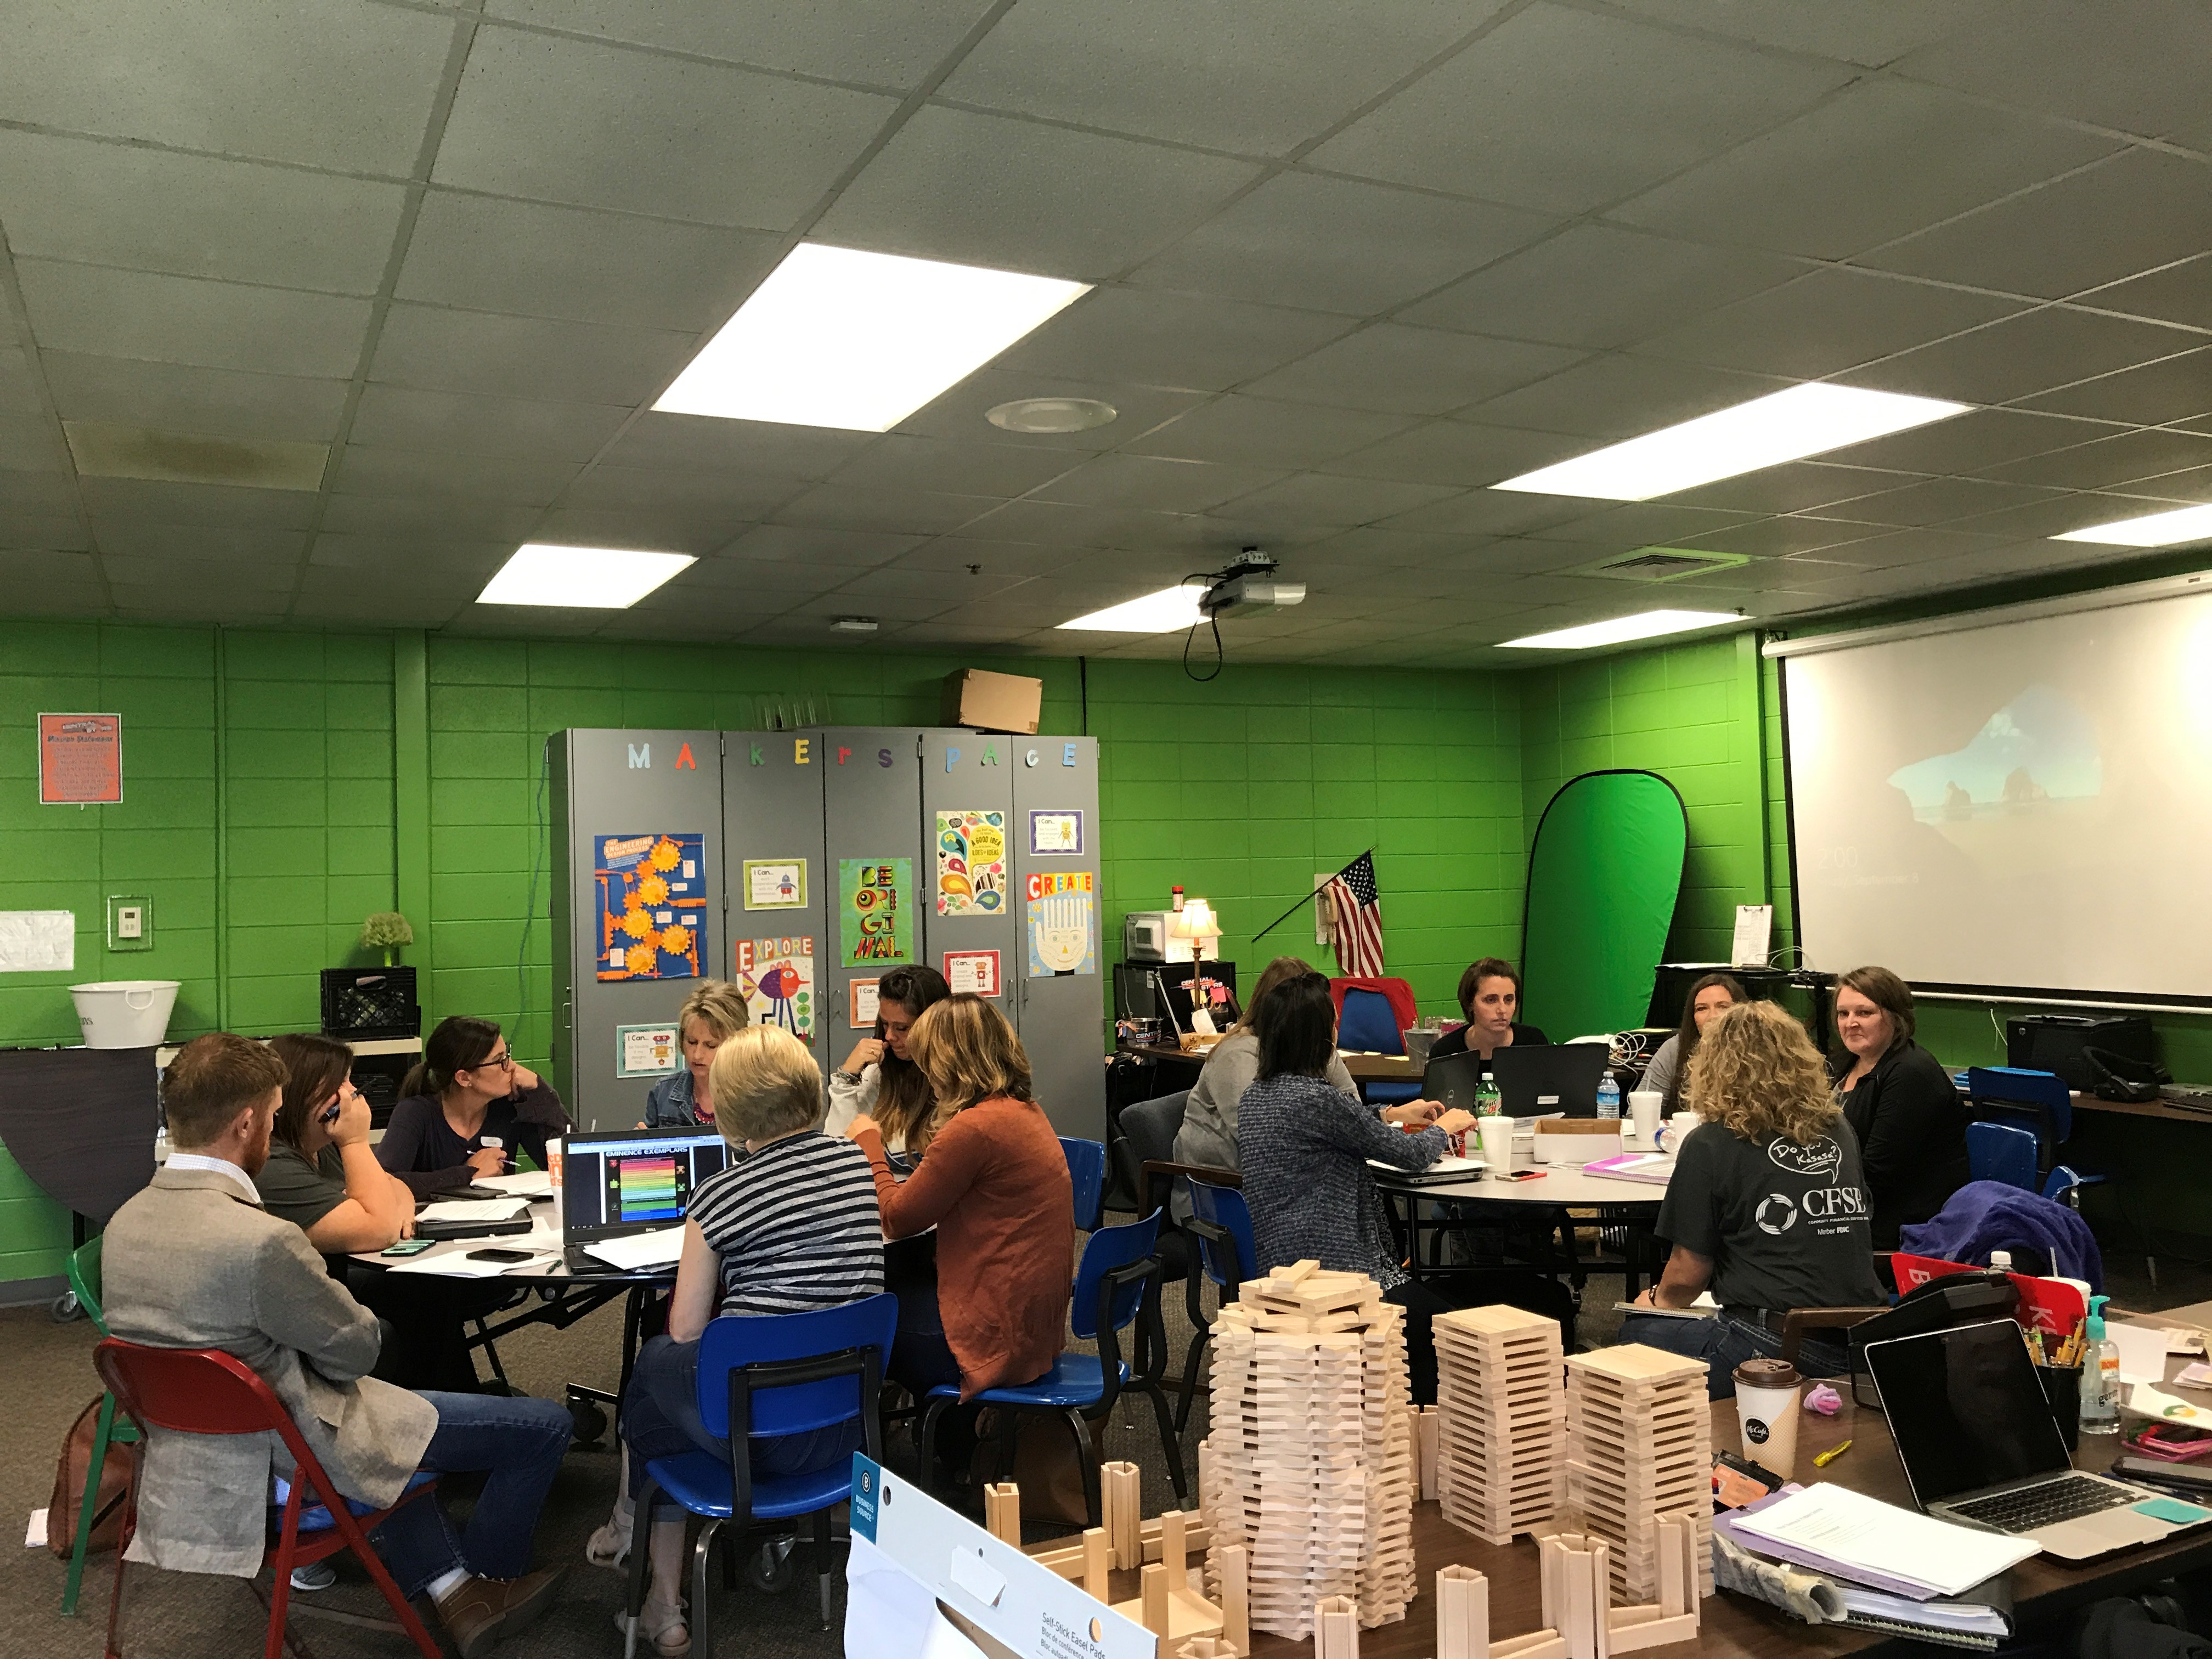 Teachers and principals meet in CES' Makerspace room